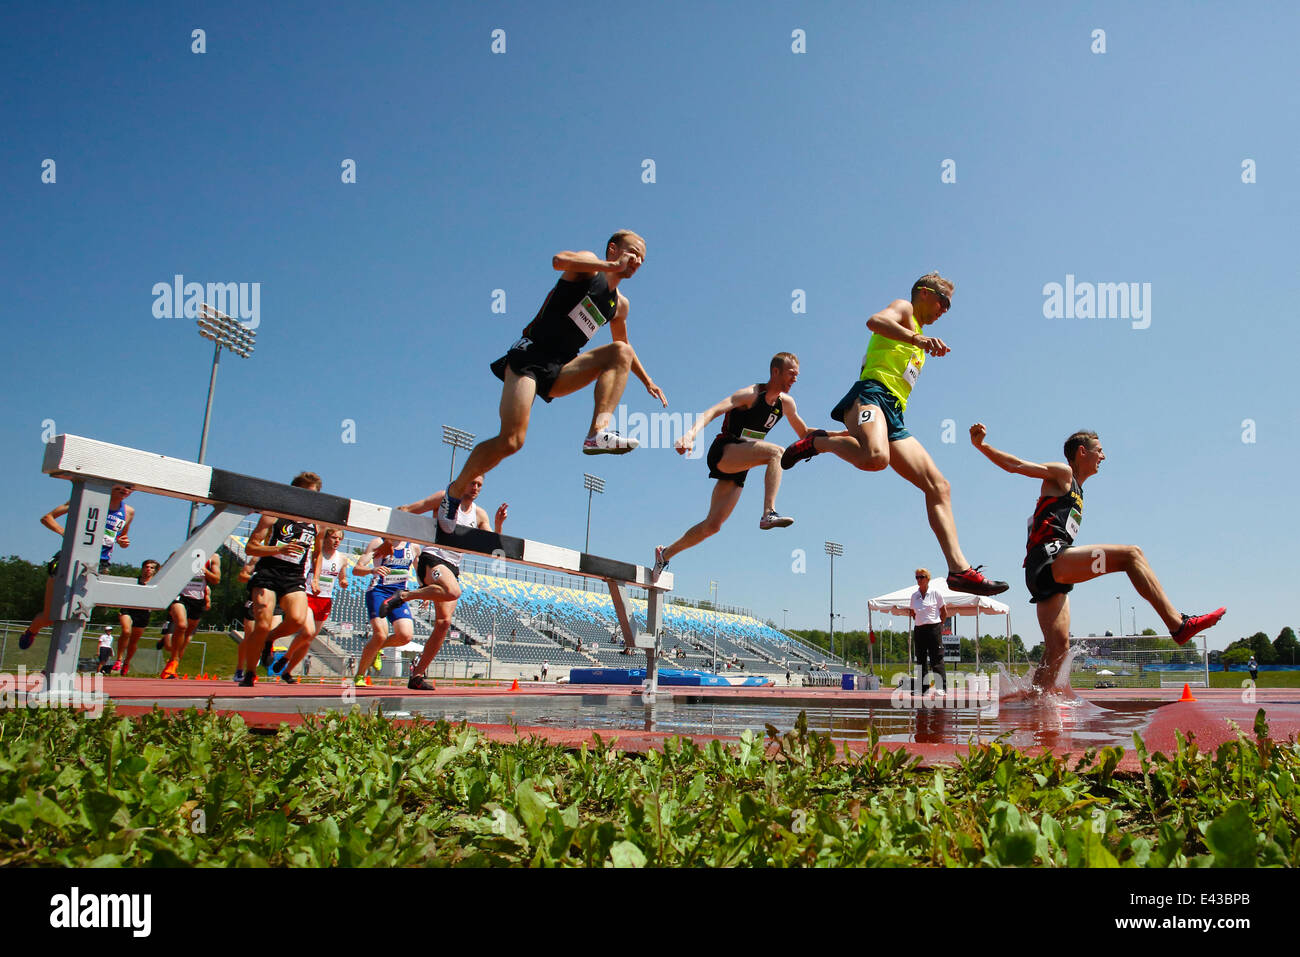 Competitors in the men's 3000-meter steeplechase at the Canadian Track & Field Championships June 28, 2014 in Moncton. Stock Photo